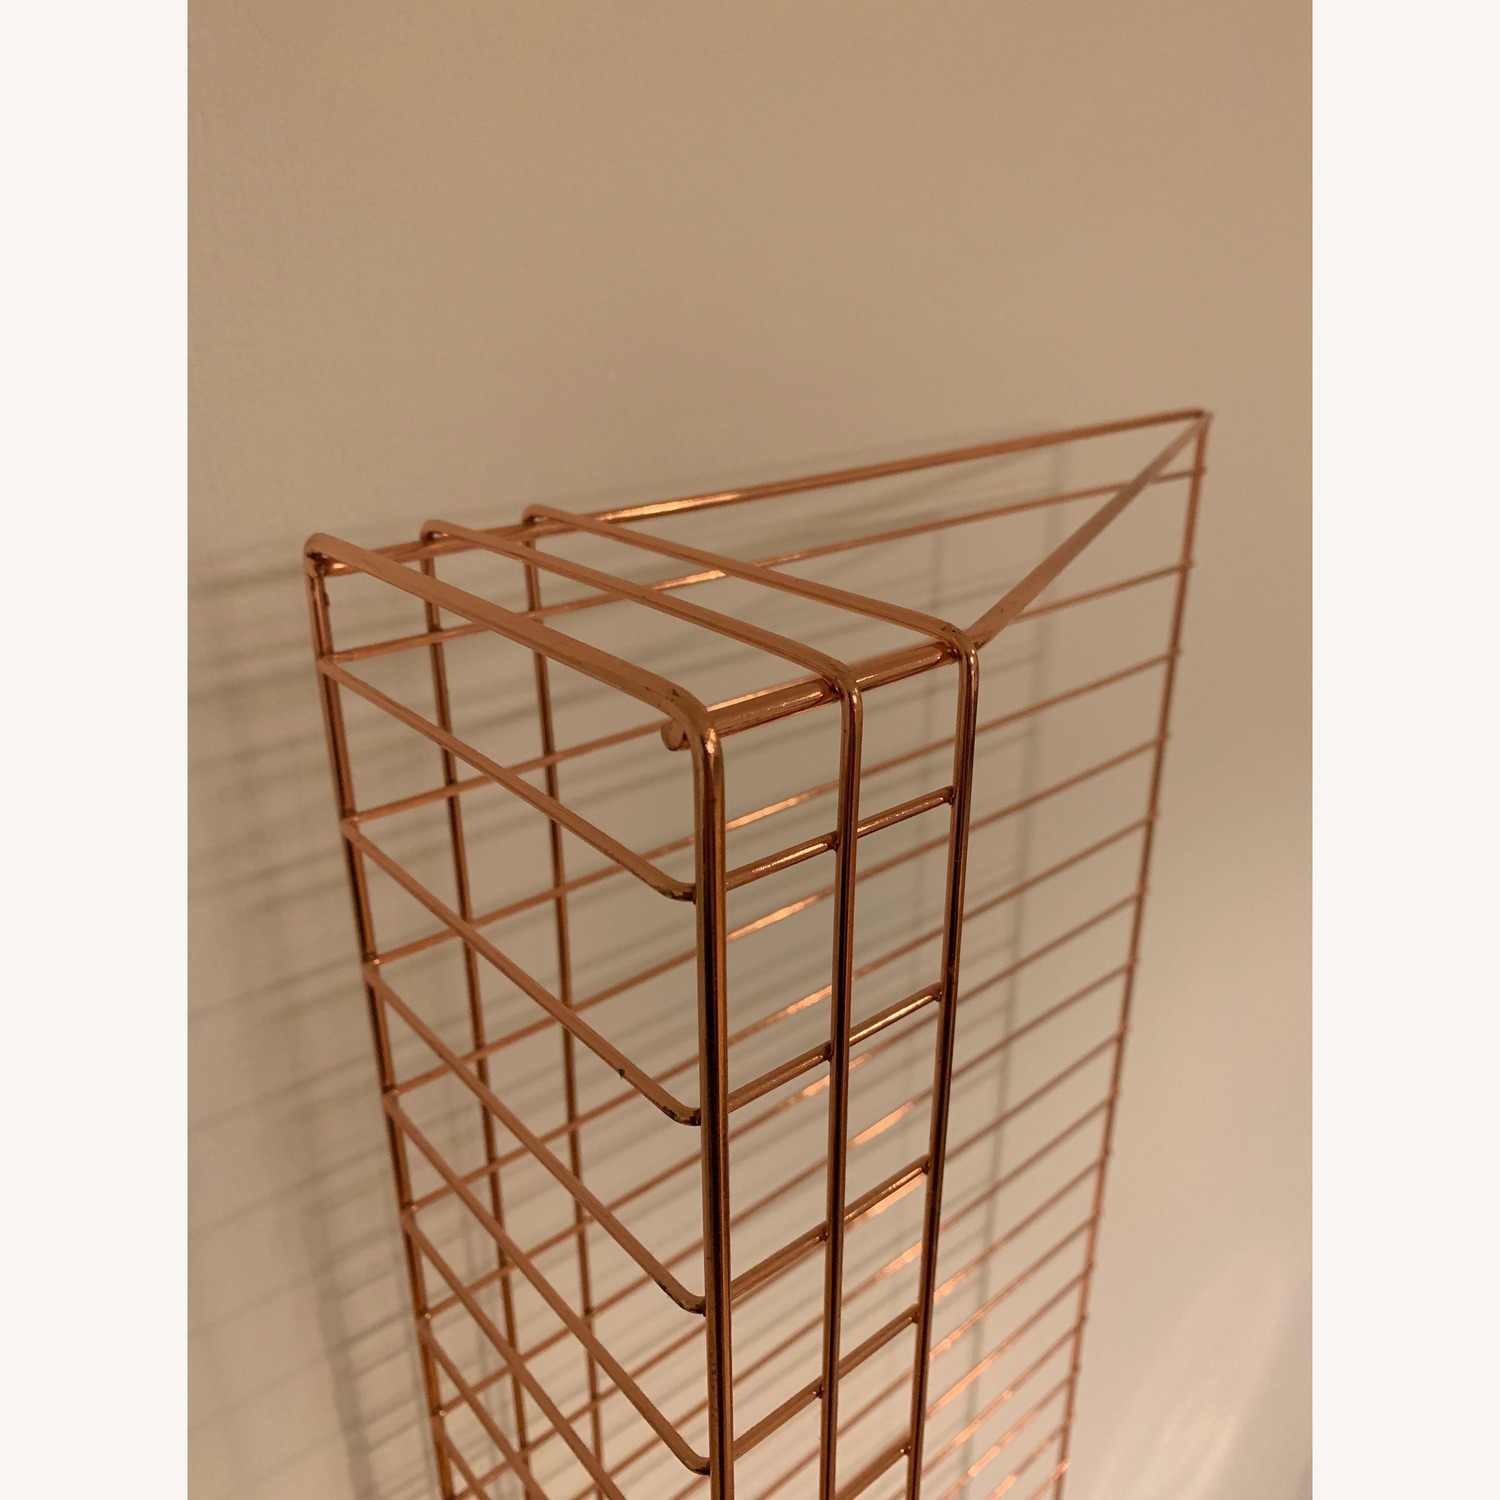 Rose Gold Shelf/Display